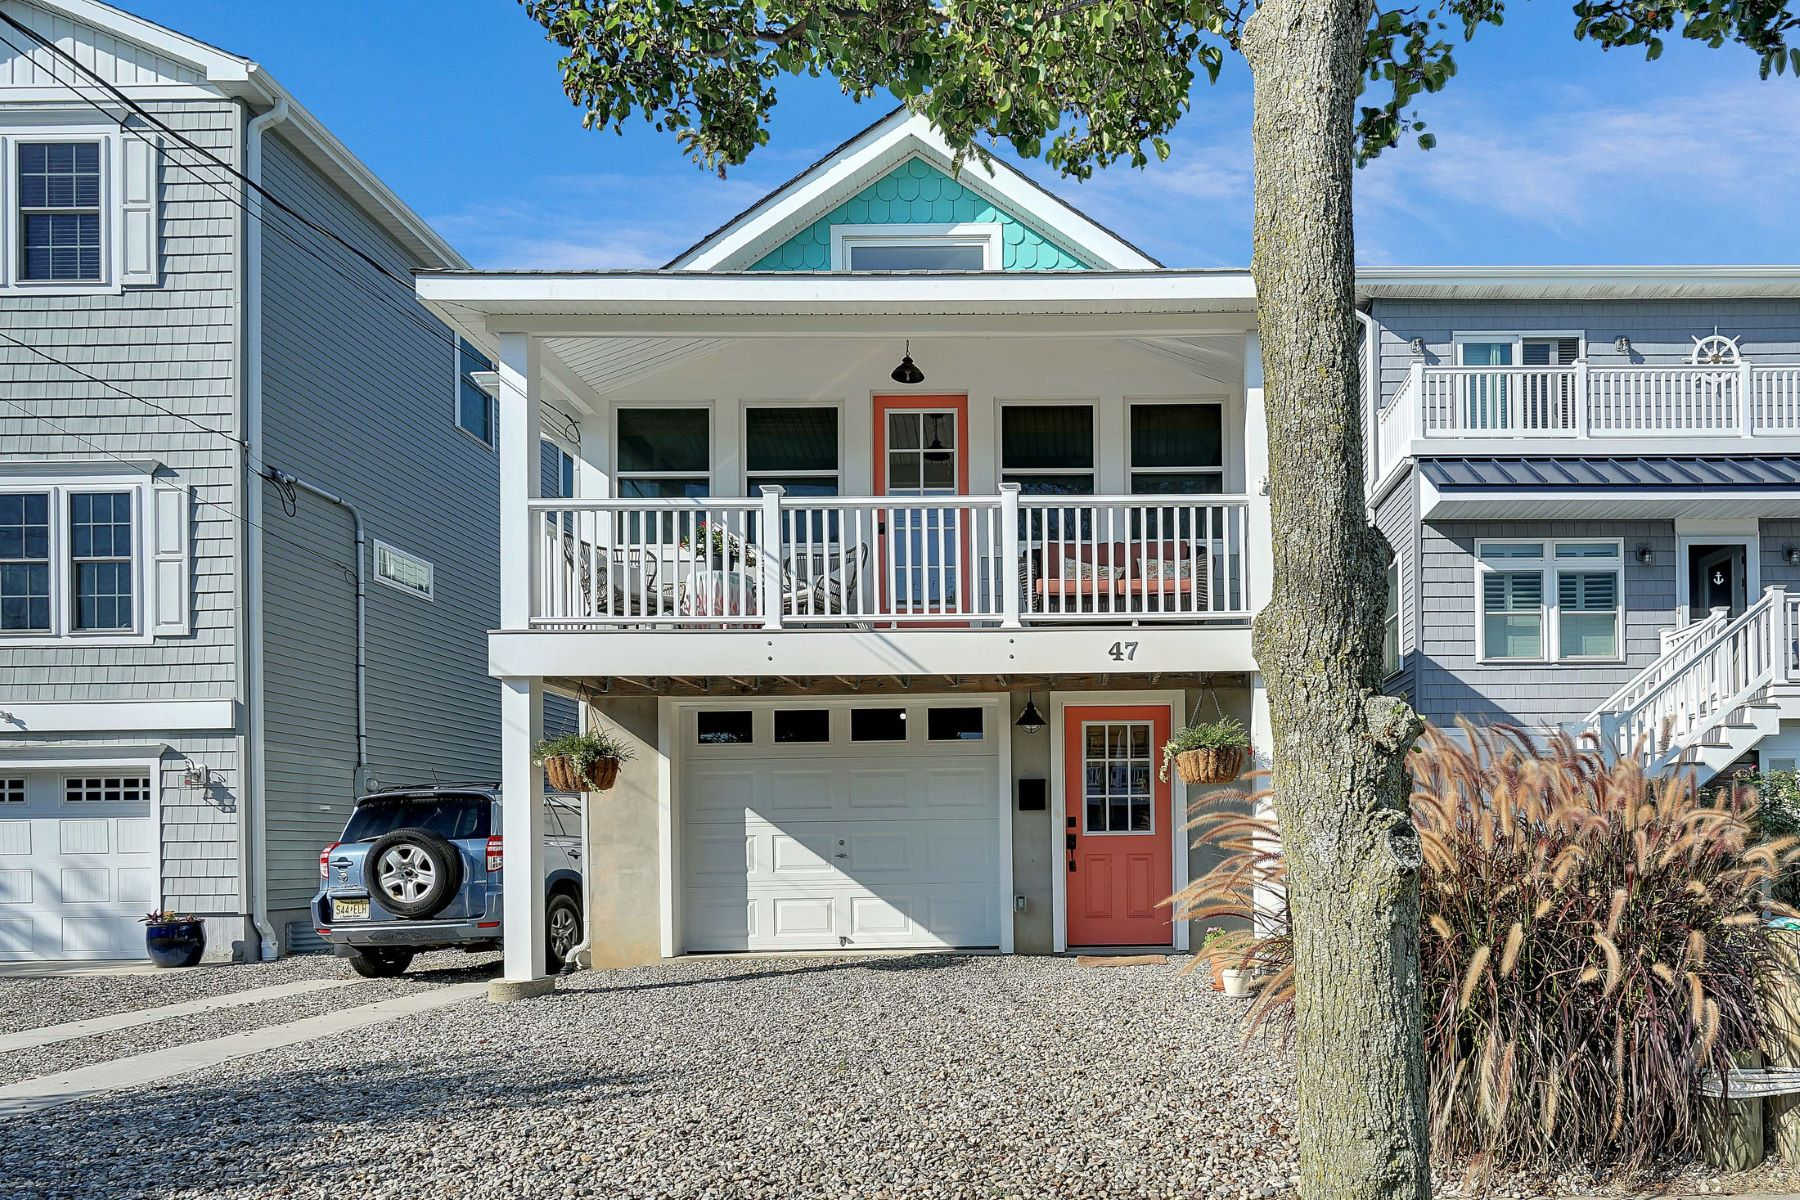 Single Family Homes for Active at Beach Home in Manasquan 47 Ocean Avenue Manasquan, New Jersey 08736 United States